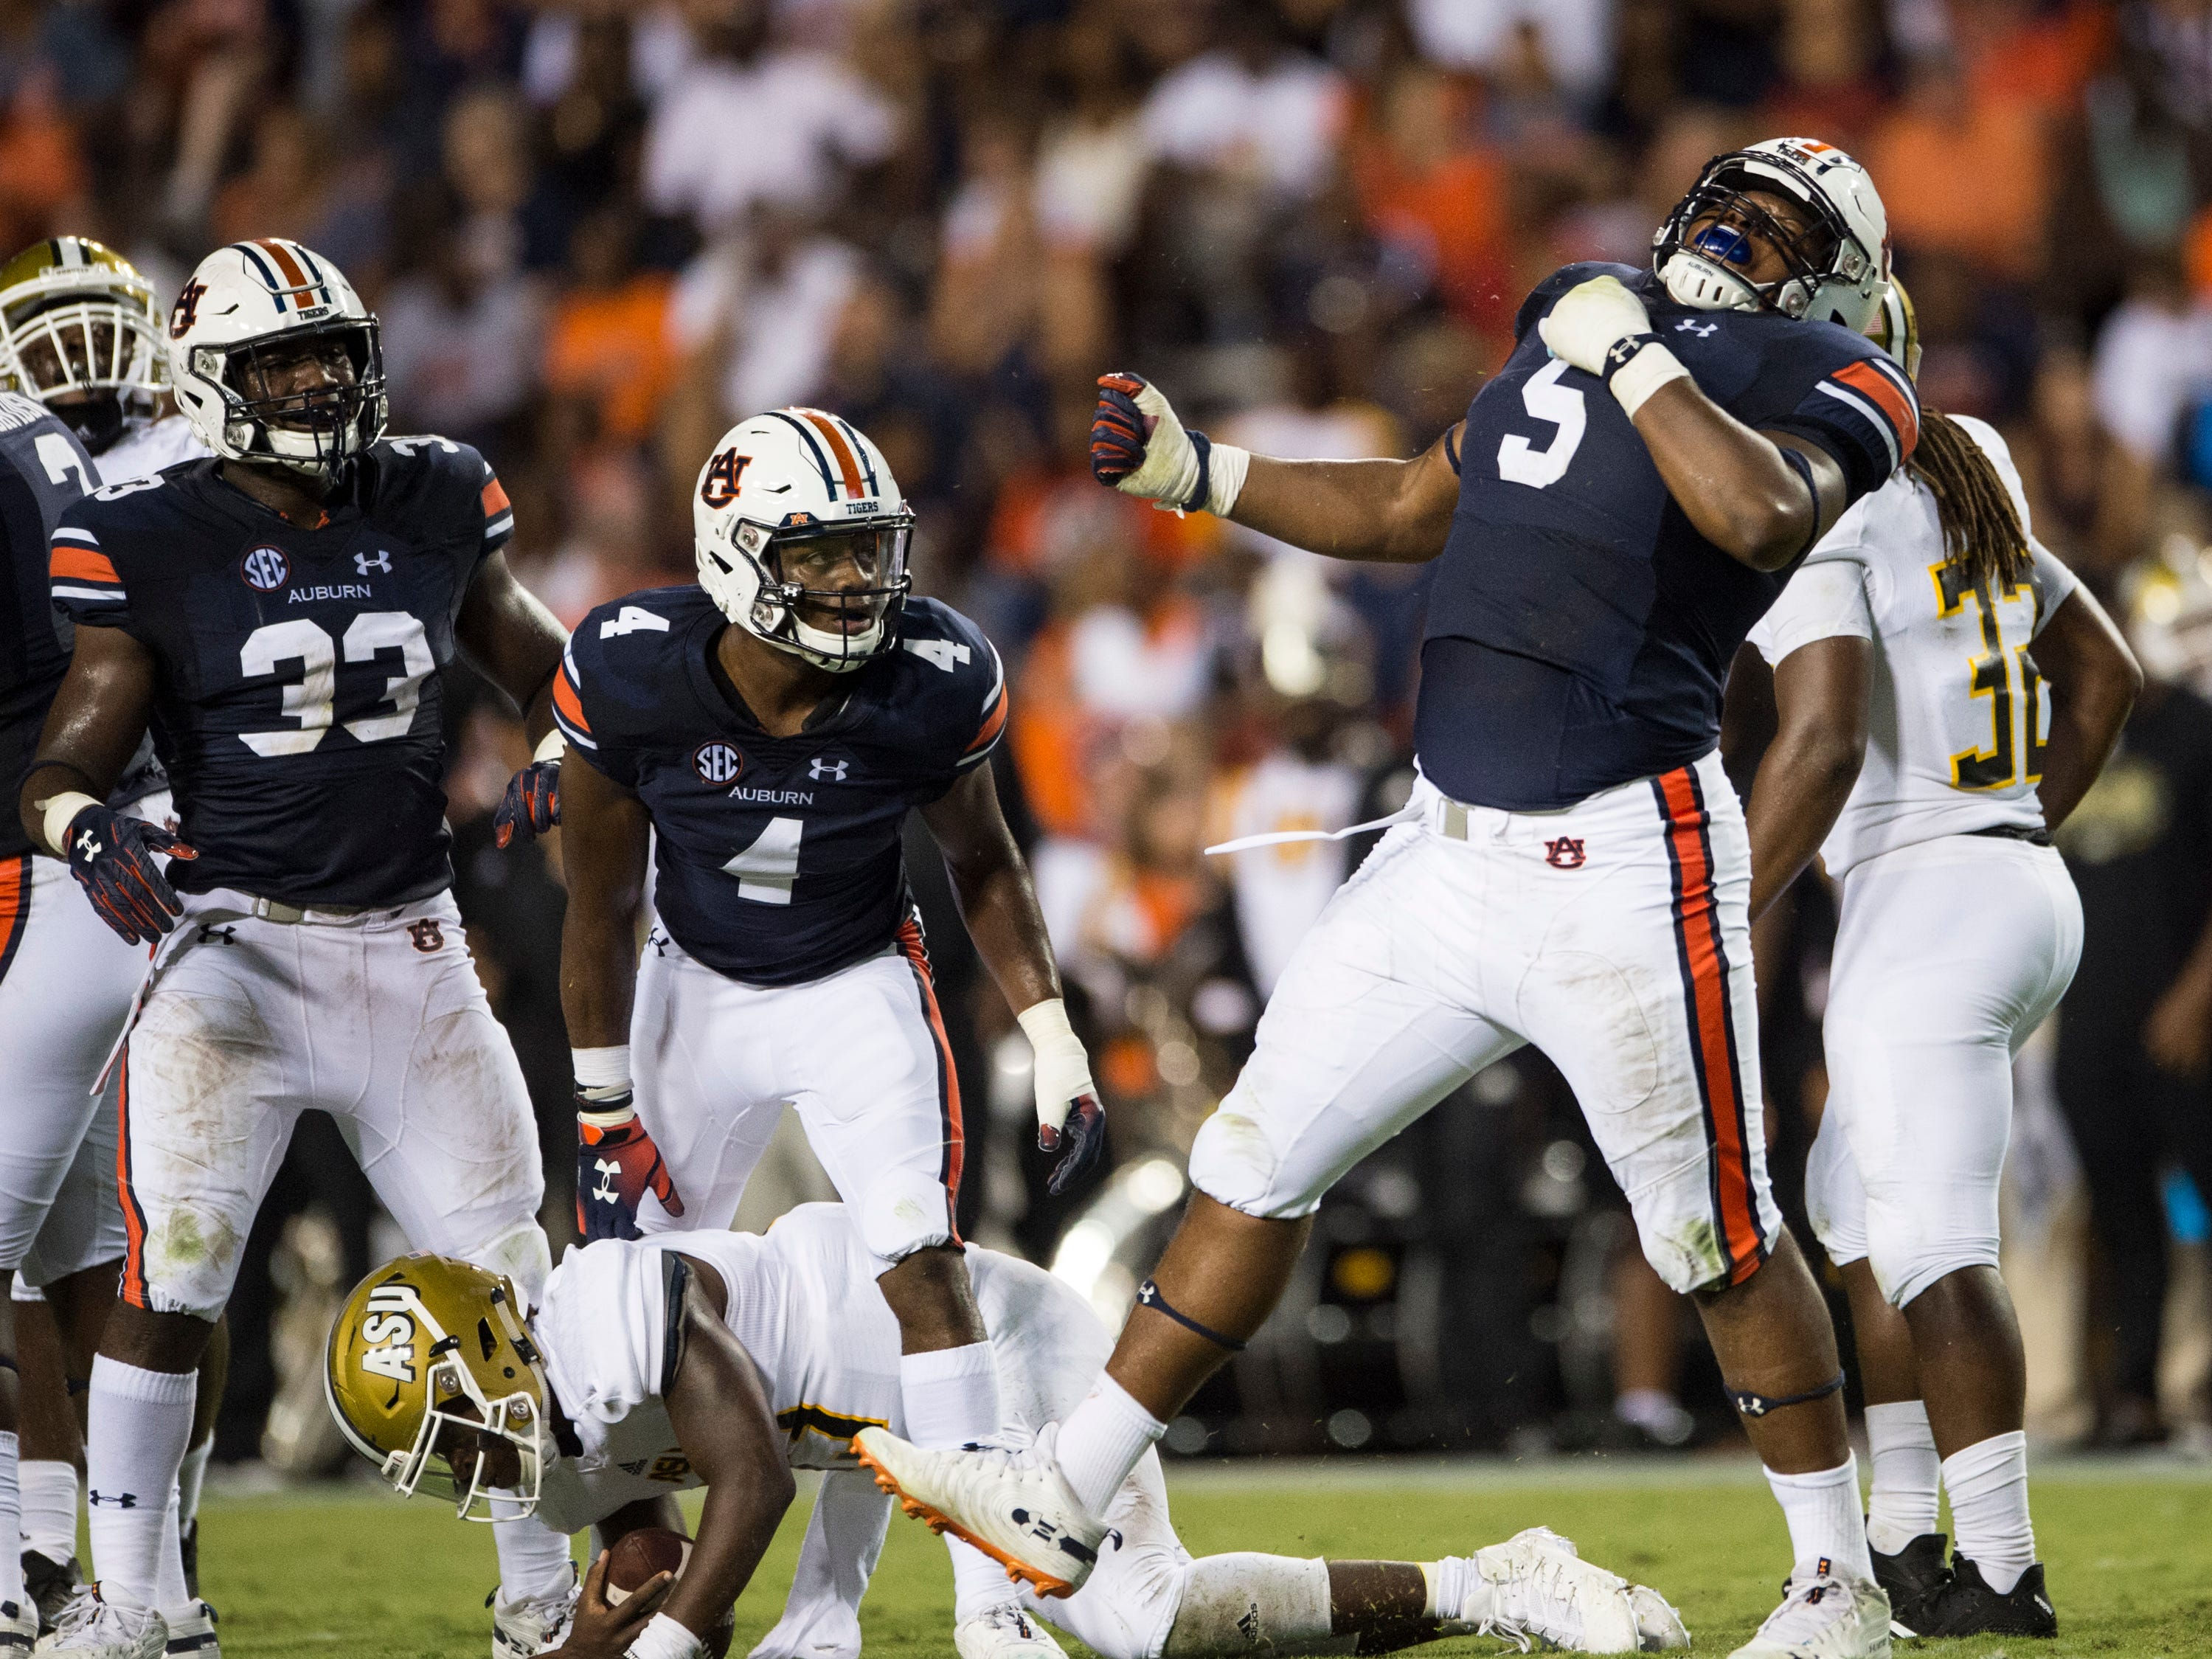 Auburn's Derrick Brown (5) celebrates after sacking Alabama State's Palmer Graham (13) at Jordan-Hare Stadium in Auburn, Ala., on Saturday, Sept. 8, 2018. Auburn defeated Alabama State 63-9.